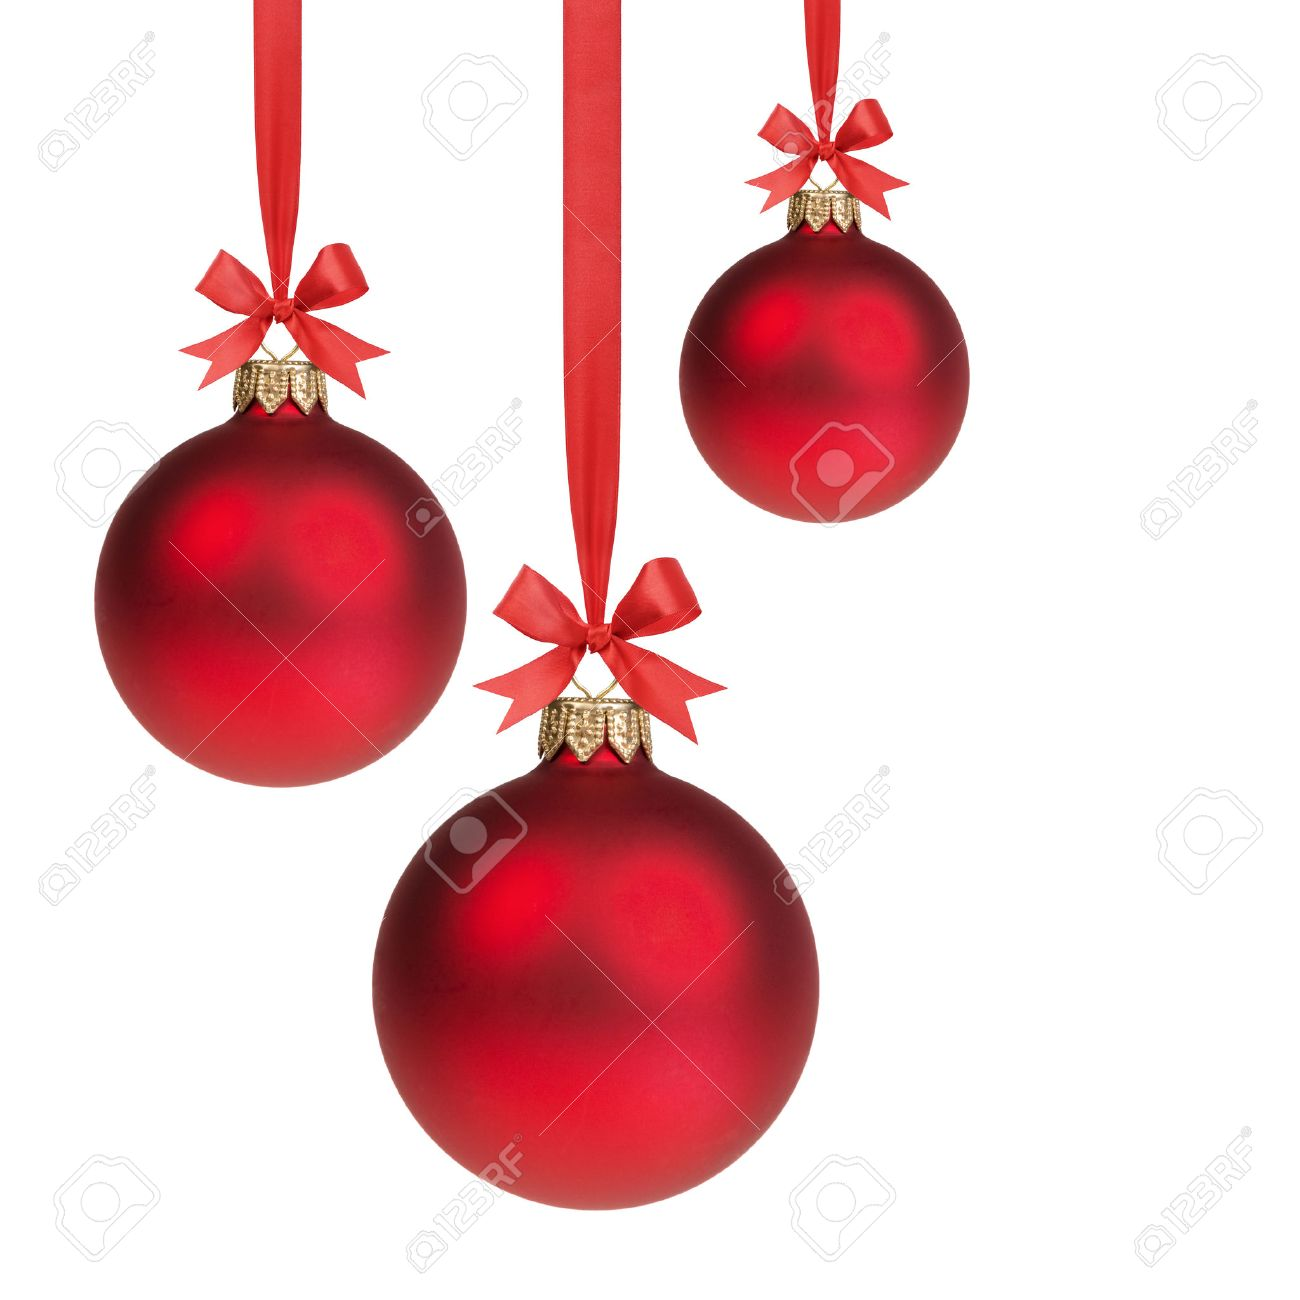 three red christmas balls hanging on ribbon with bows, isolated on white Stock Photo - 22721390